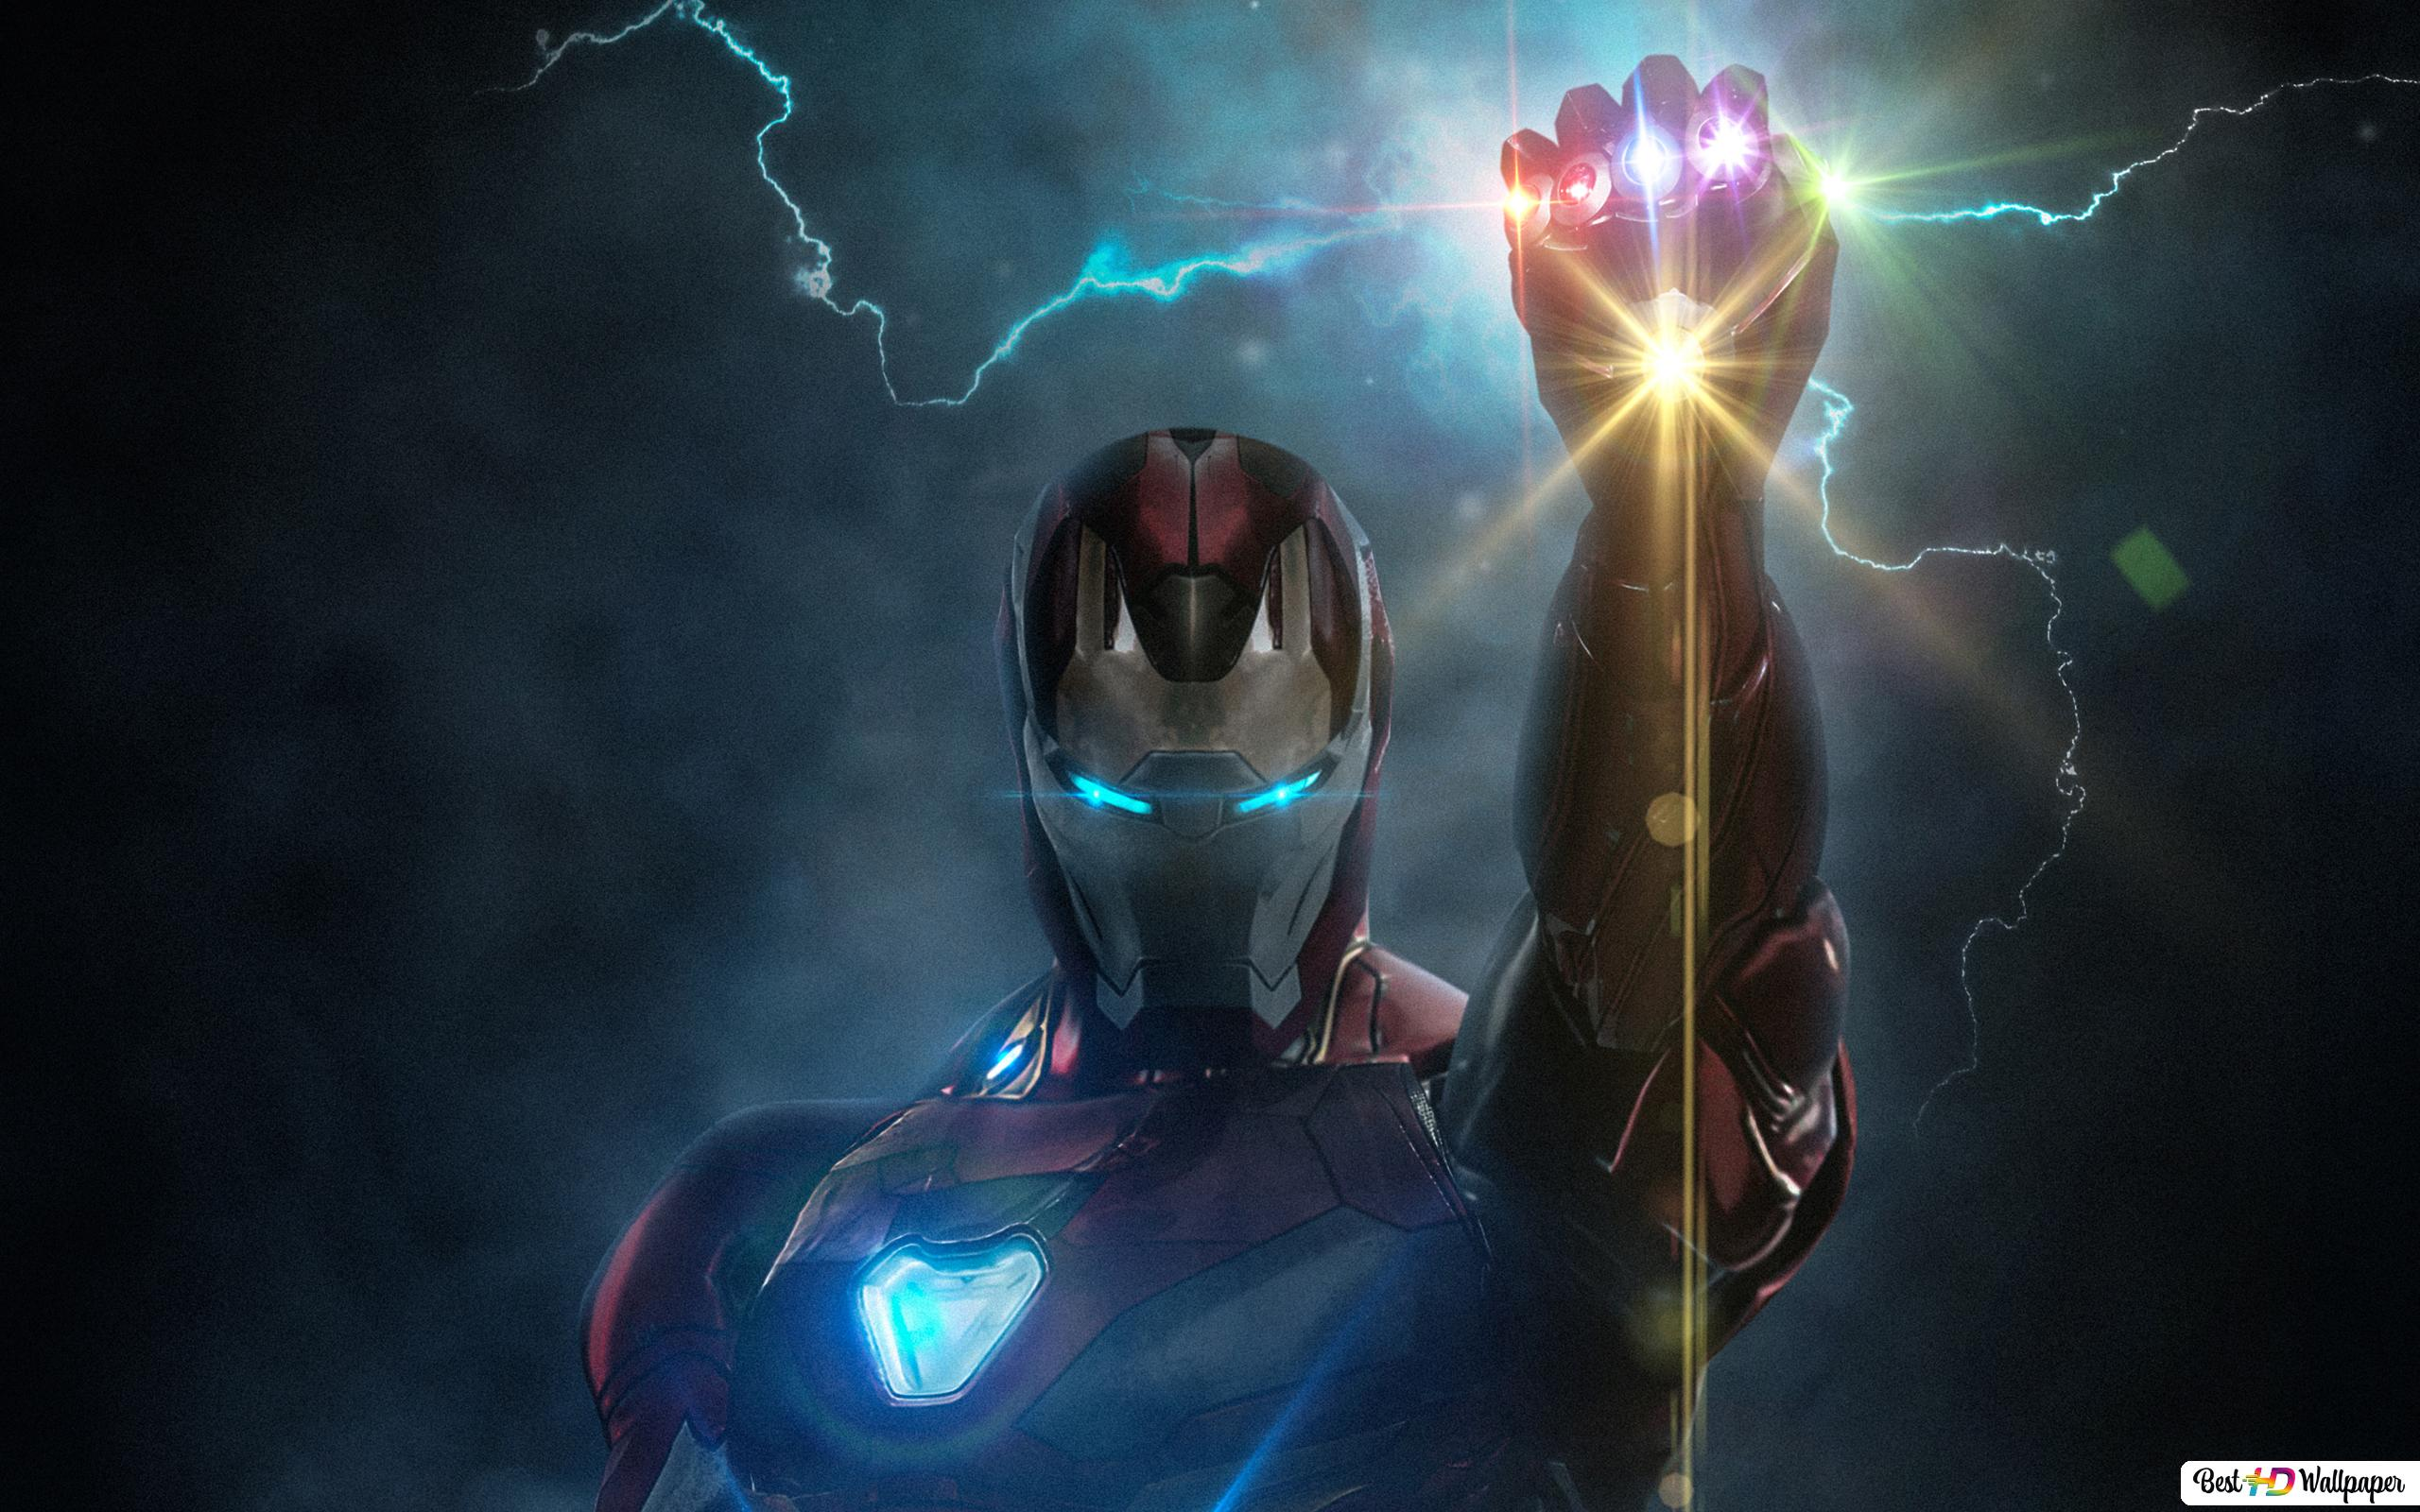 Avengers: Endgame - Ironman with infinity glove HD wallpaper download